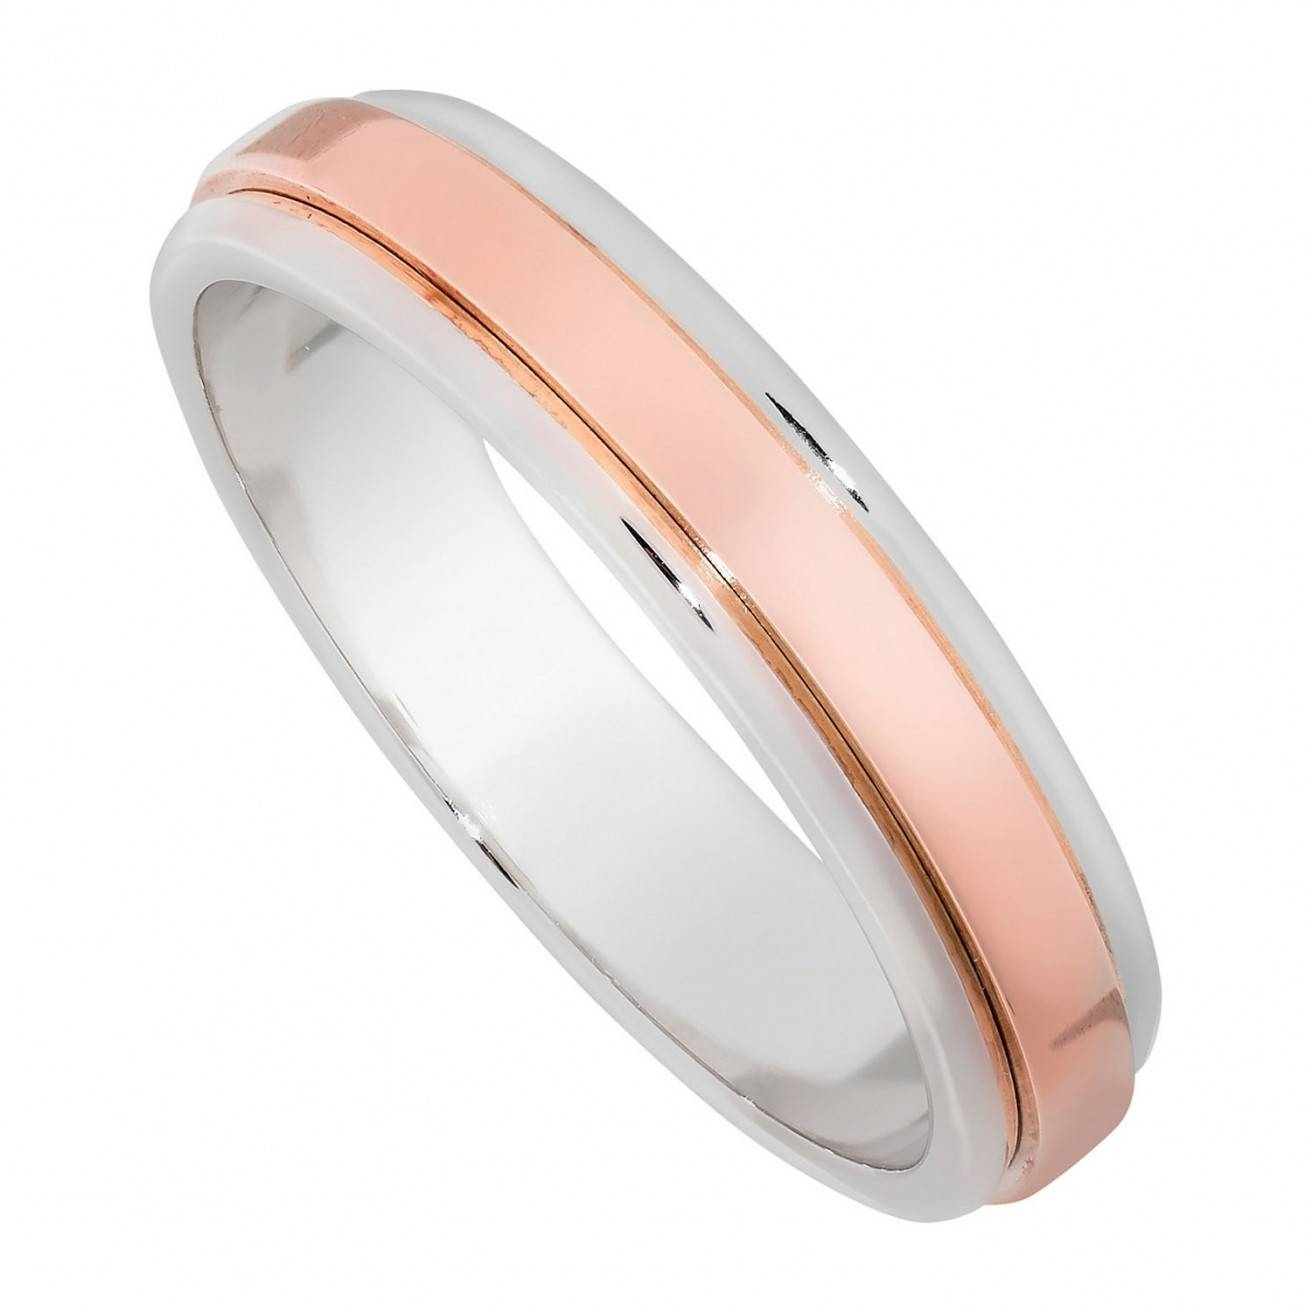 Buy Rose Gold Wedding Rings Online – Fraser Hart With Rose And White Gold Wedding Rings (Gallery 2 of 15)